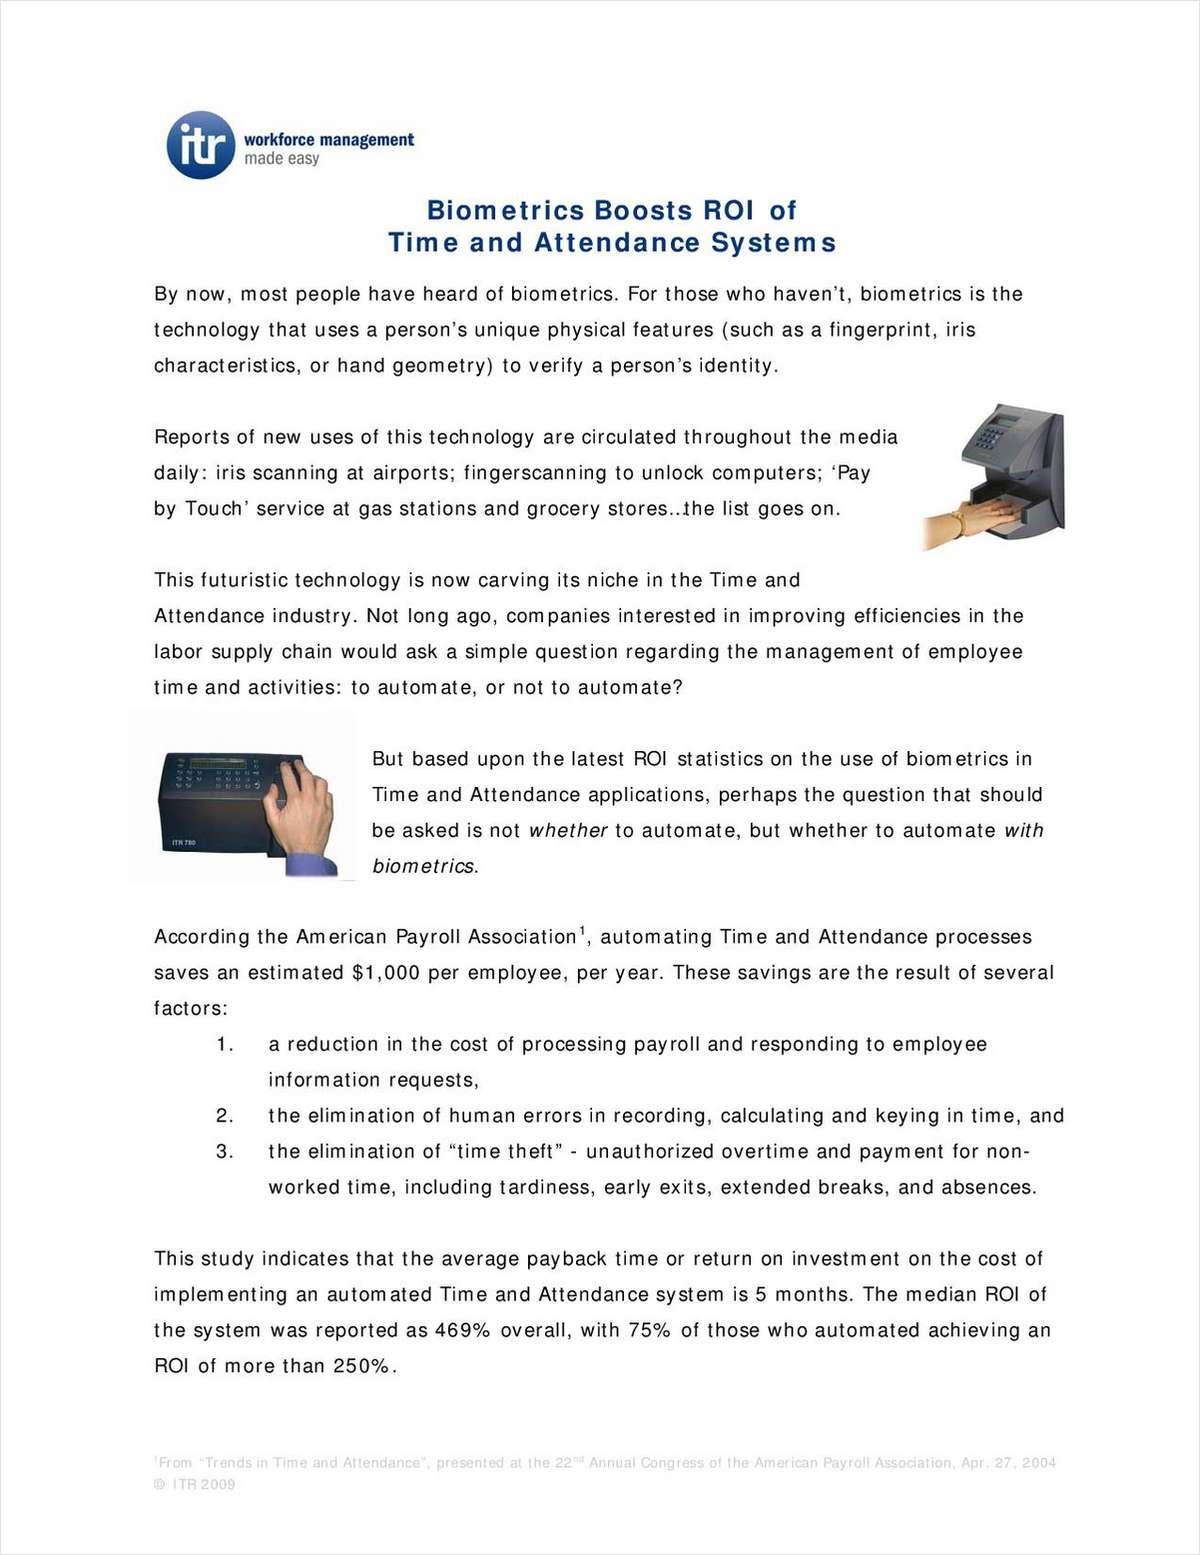 Biometrics Boosts ROI of Time and Attendance Systems